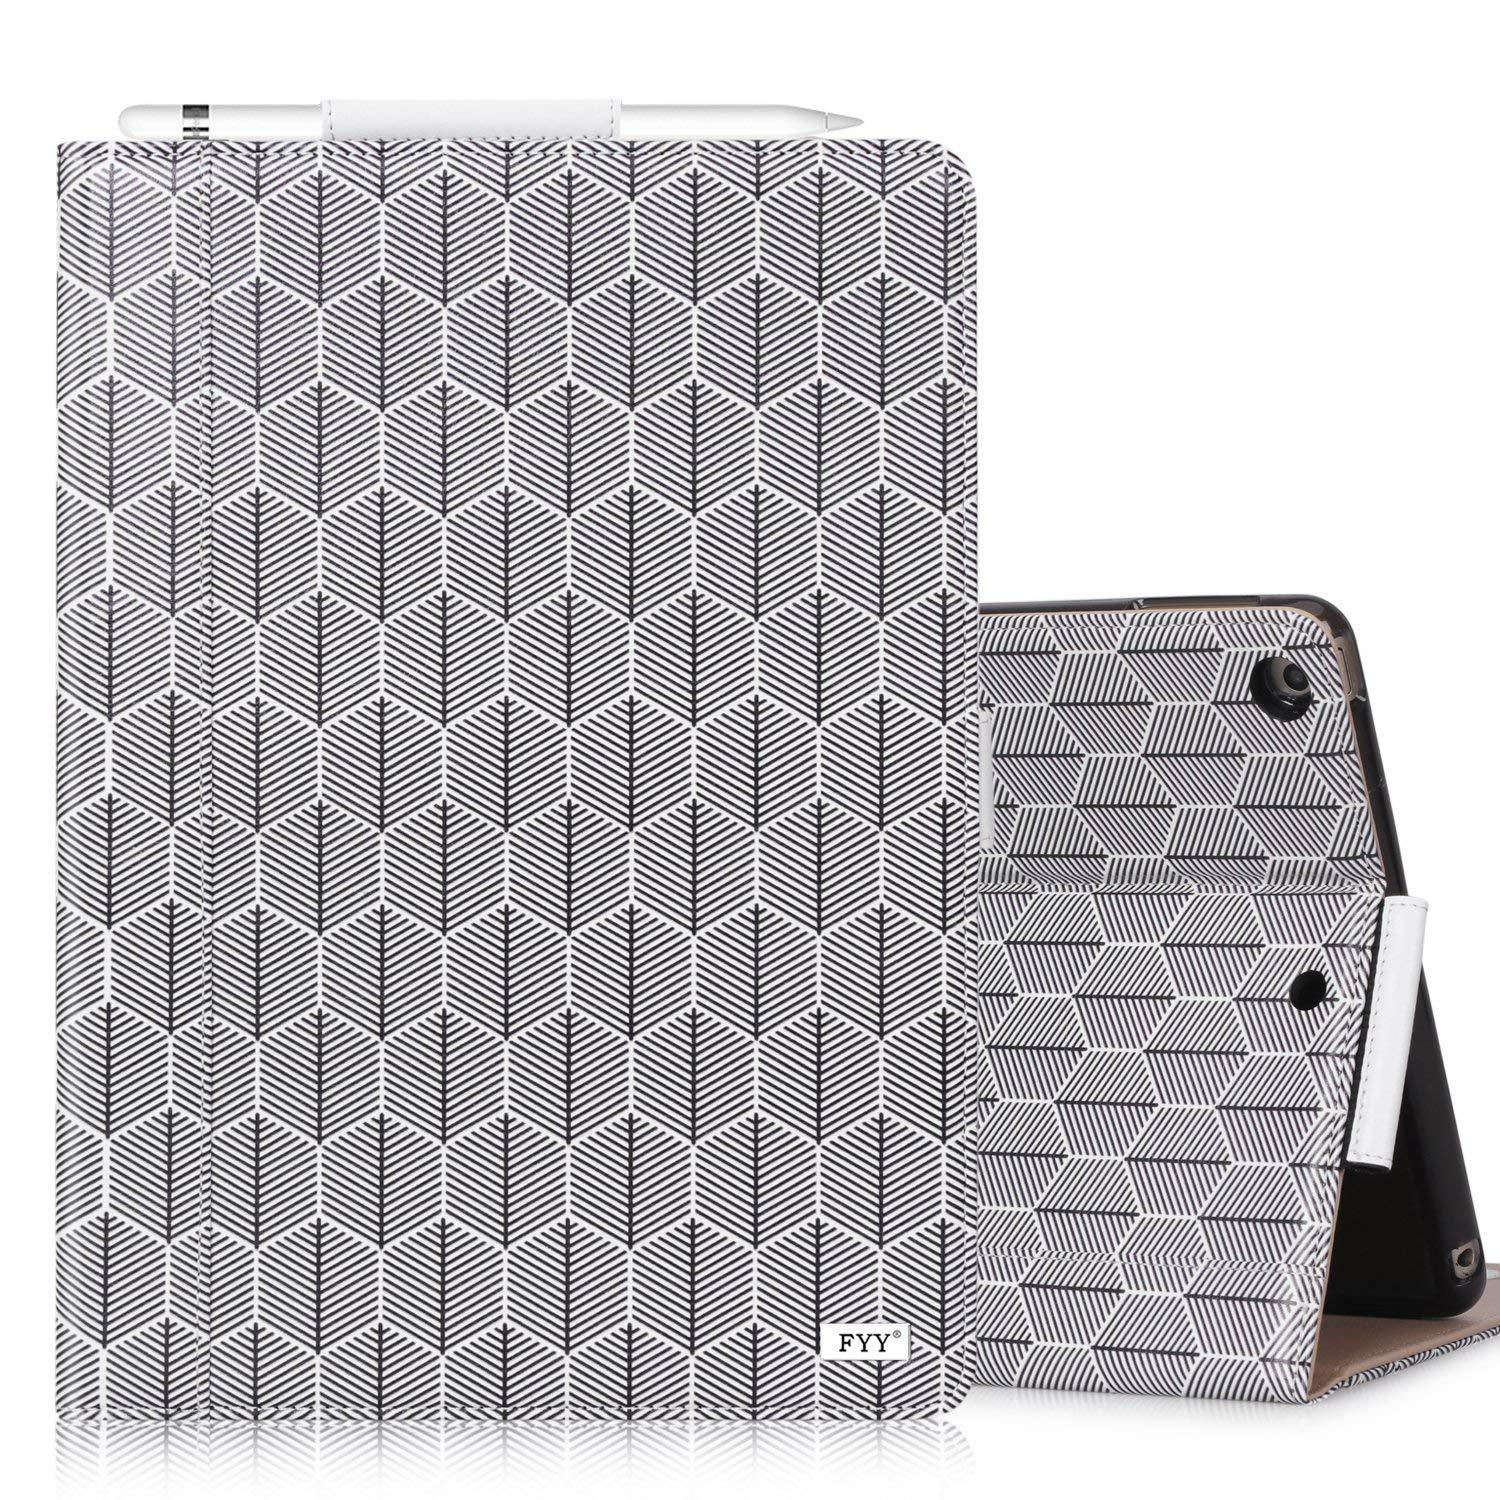 Premium Leather Case for iPad 9.7""